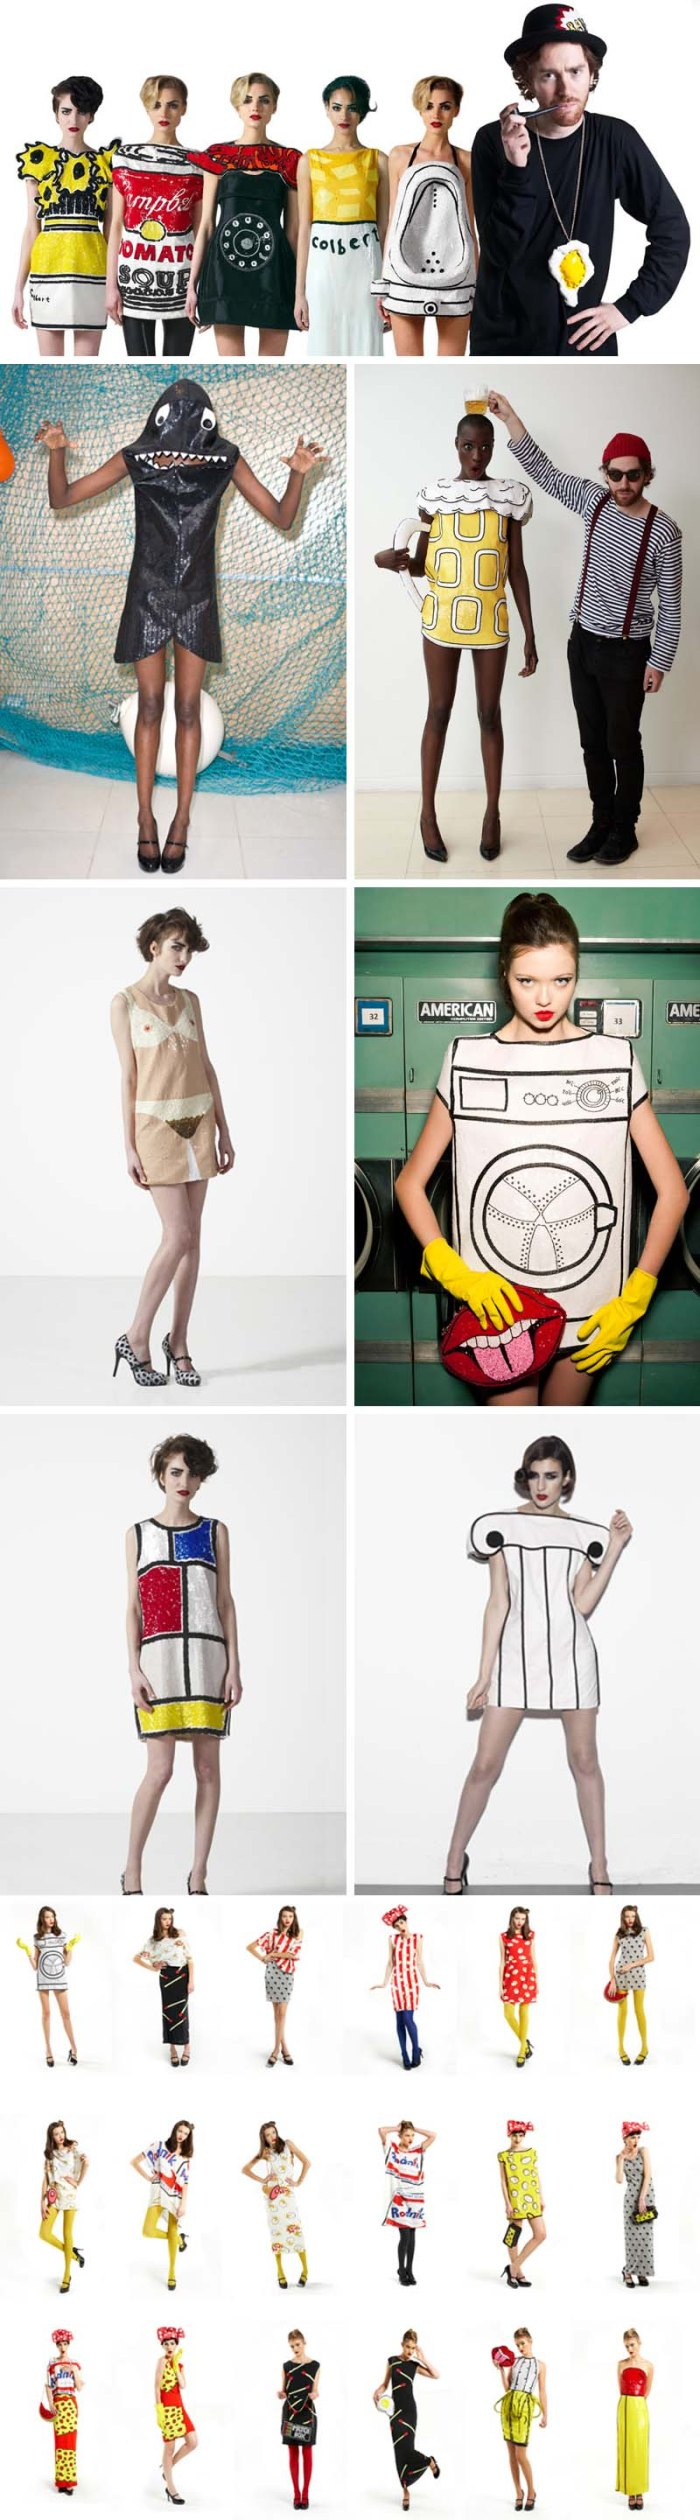 Pop Art dresses, crazy fun fashion, The Rodnik Band by Philip Colbert